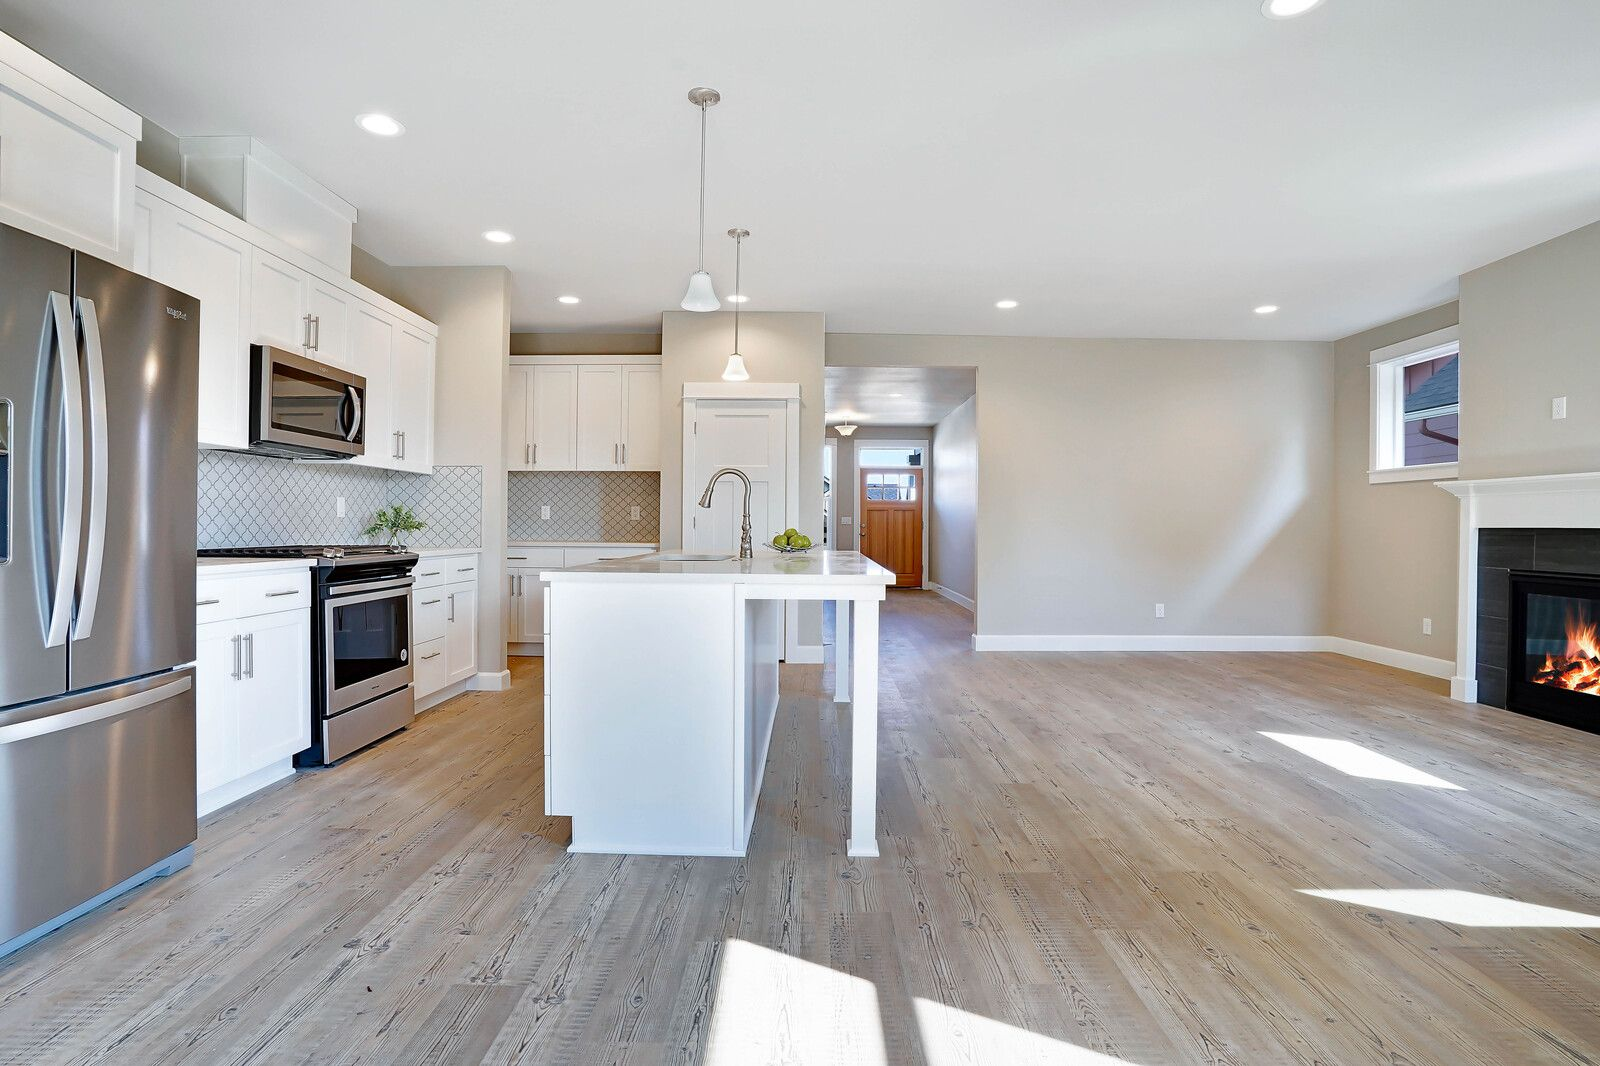 Kitchen featured in The Weatherford By Woodhill Homes in Corvallis, OR